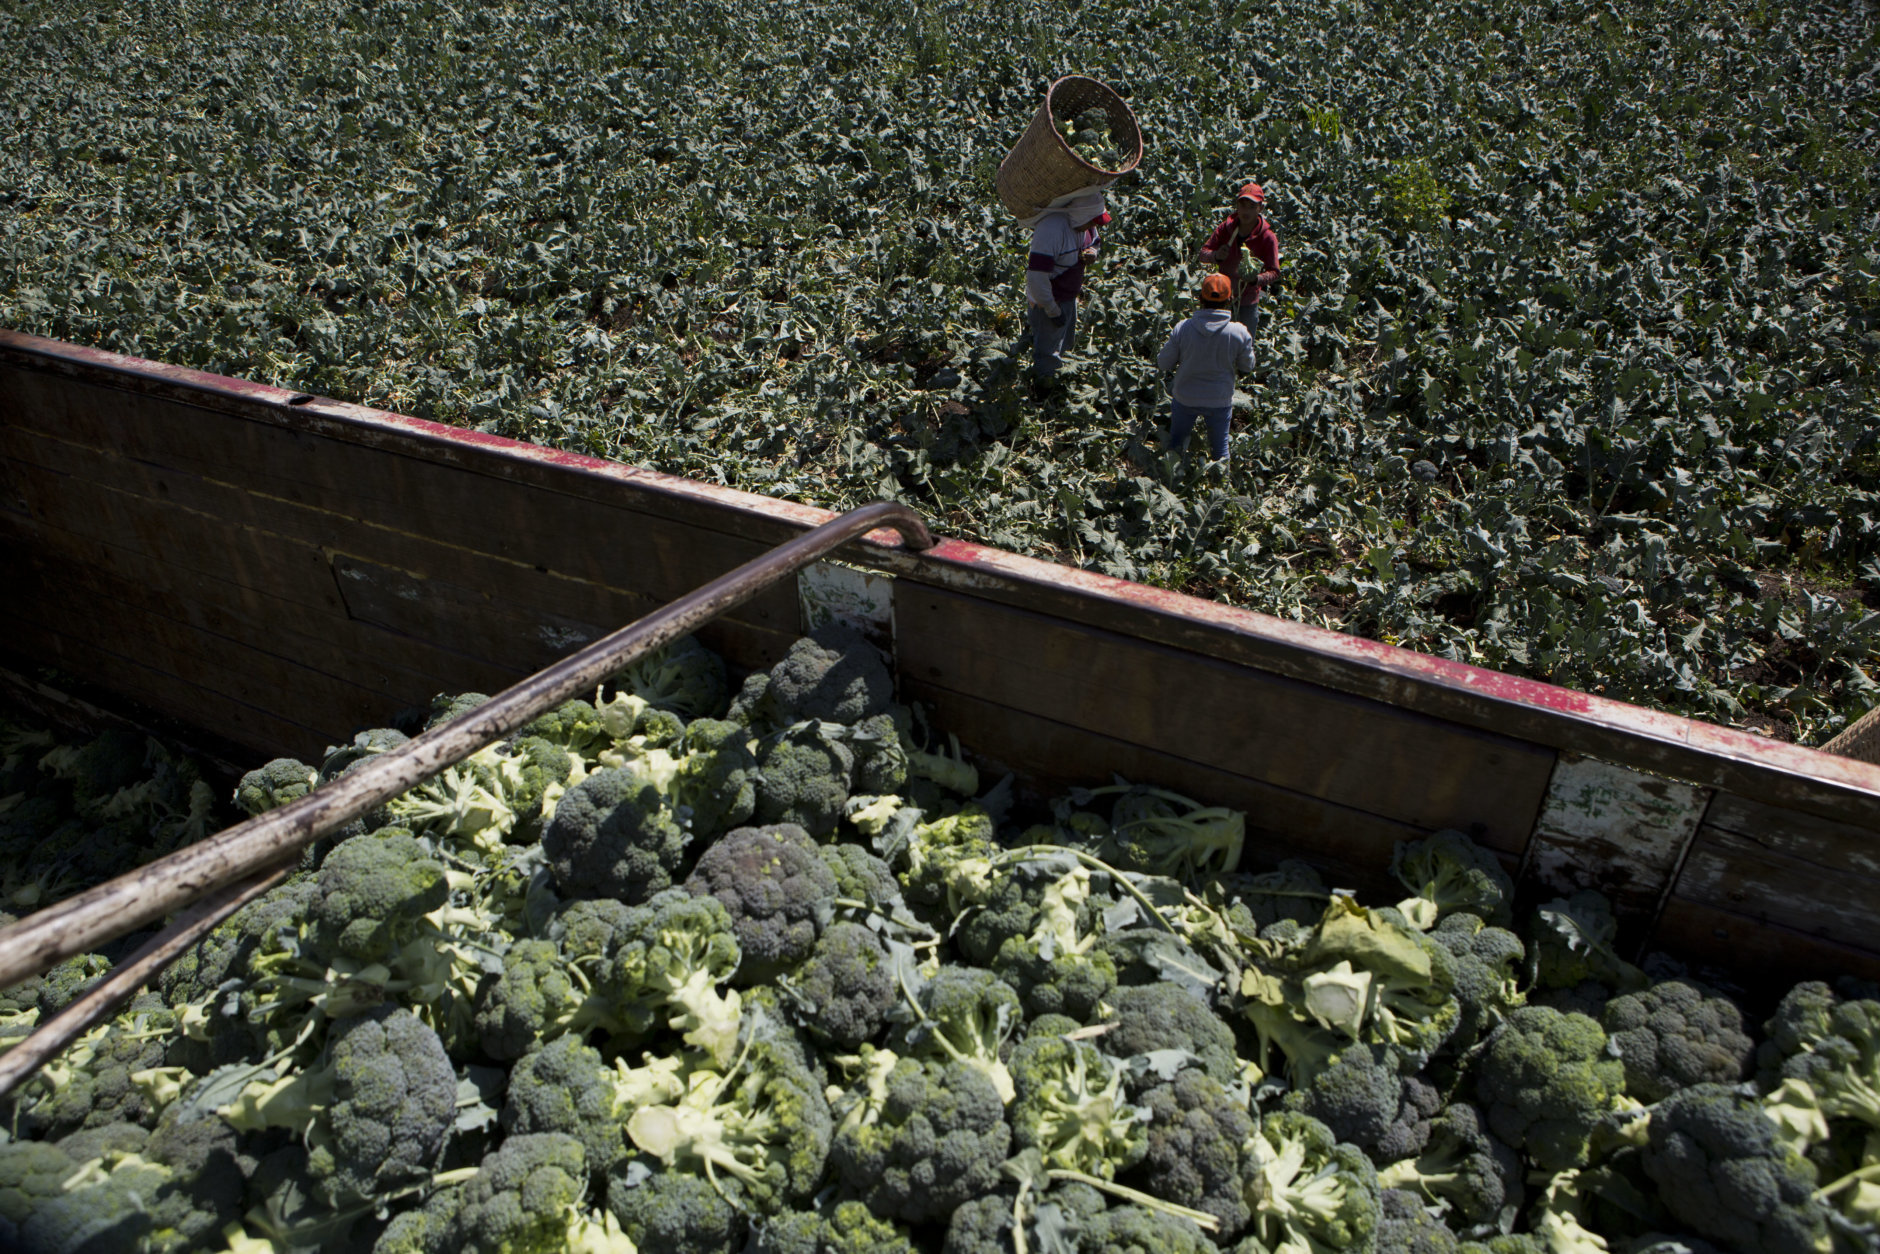 In this April 1, 2017 photo, day laborers harvest broccoli irrigated with wastewater, near Mixquiahuala, Hidalgo state, Mexico. (AP Photo/Rebecca Blackwell)